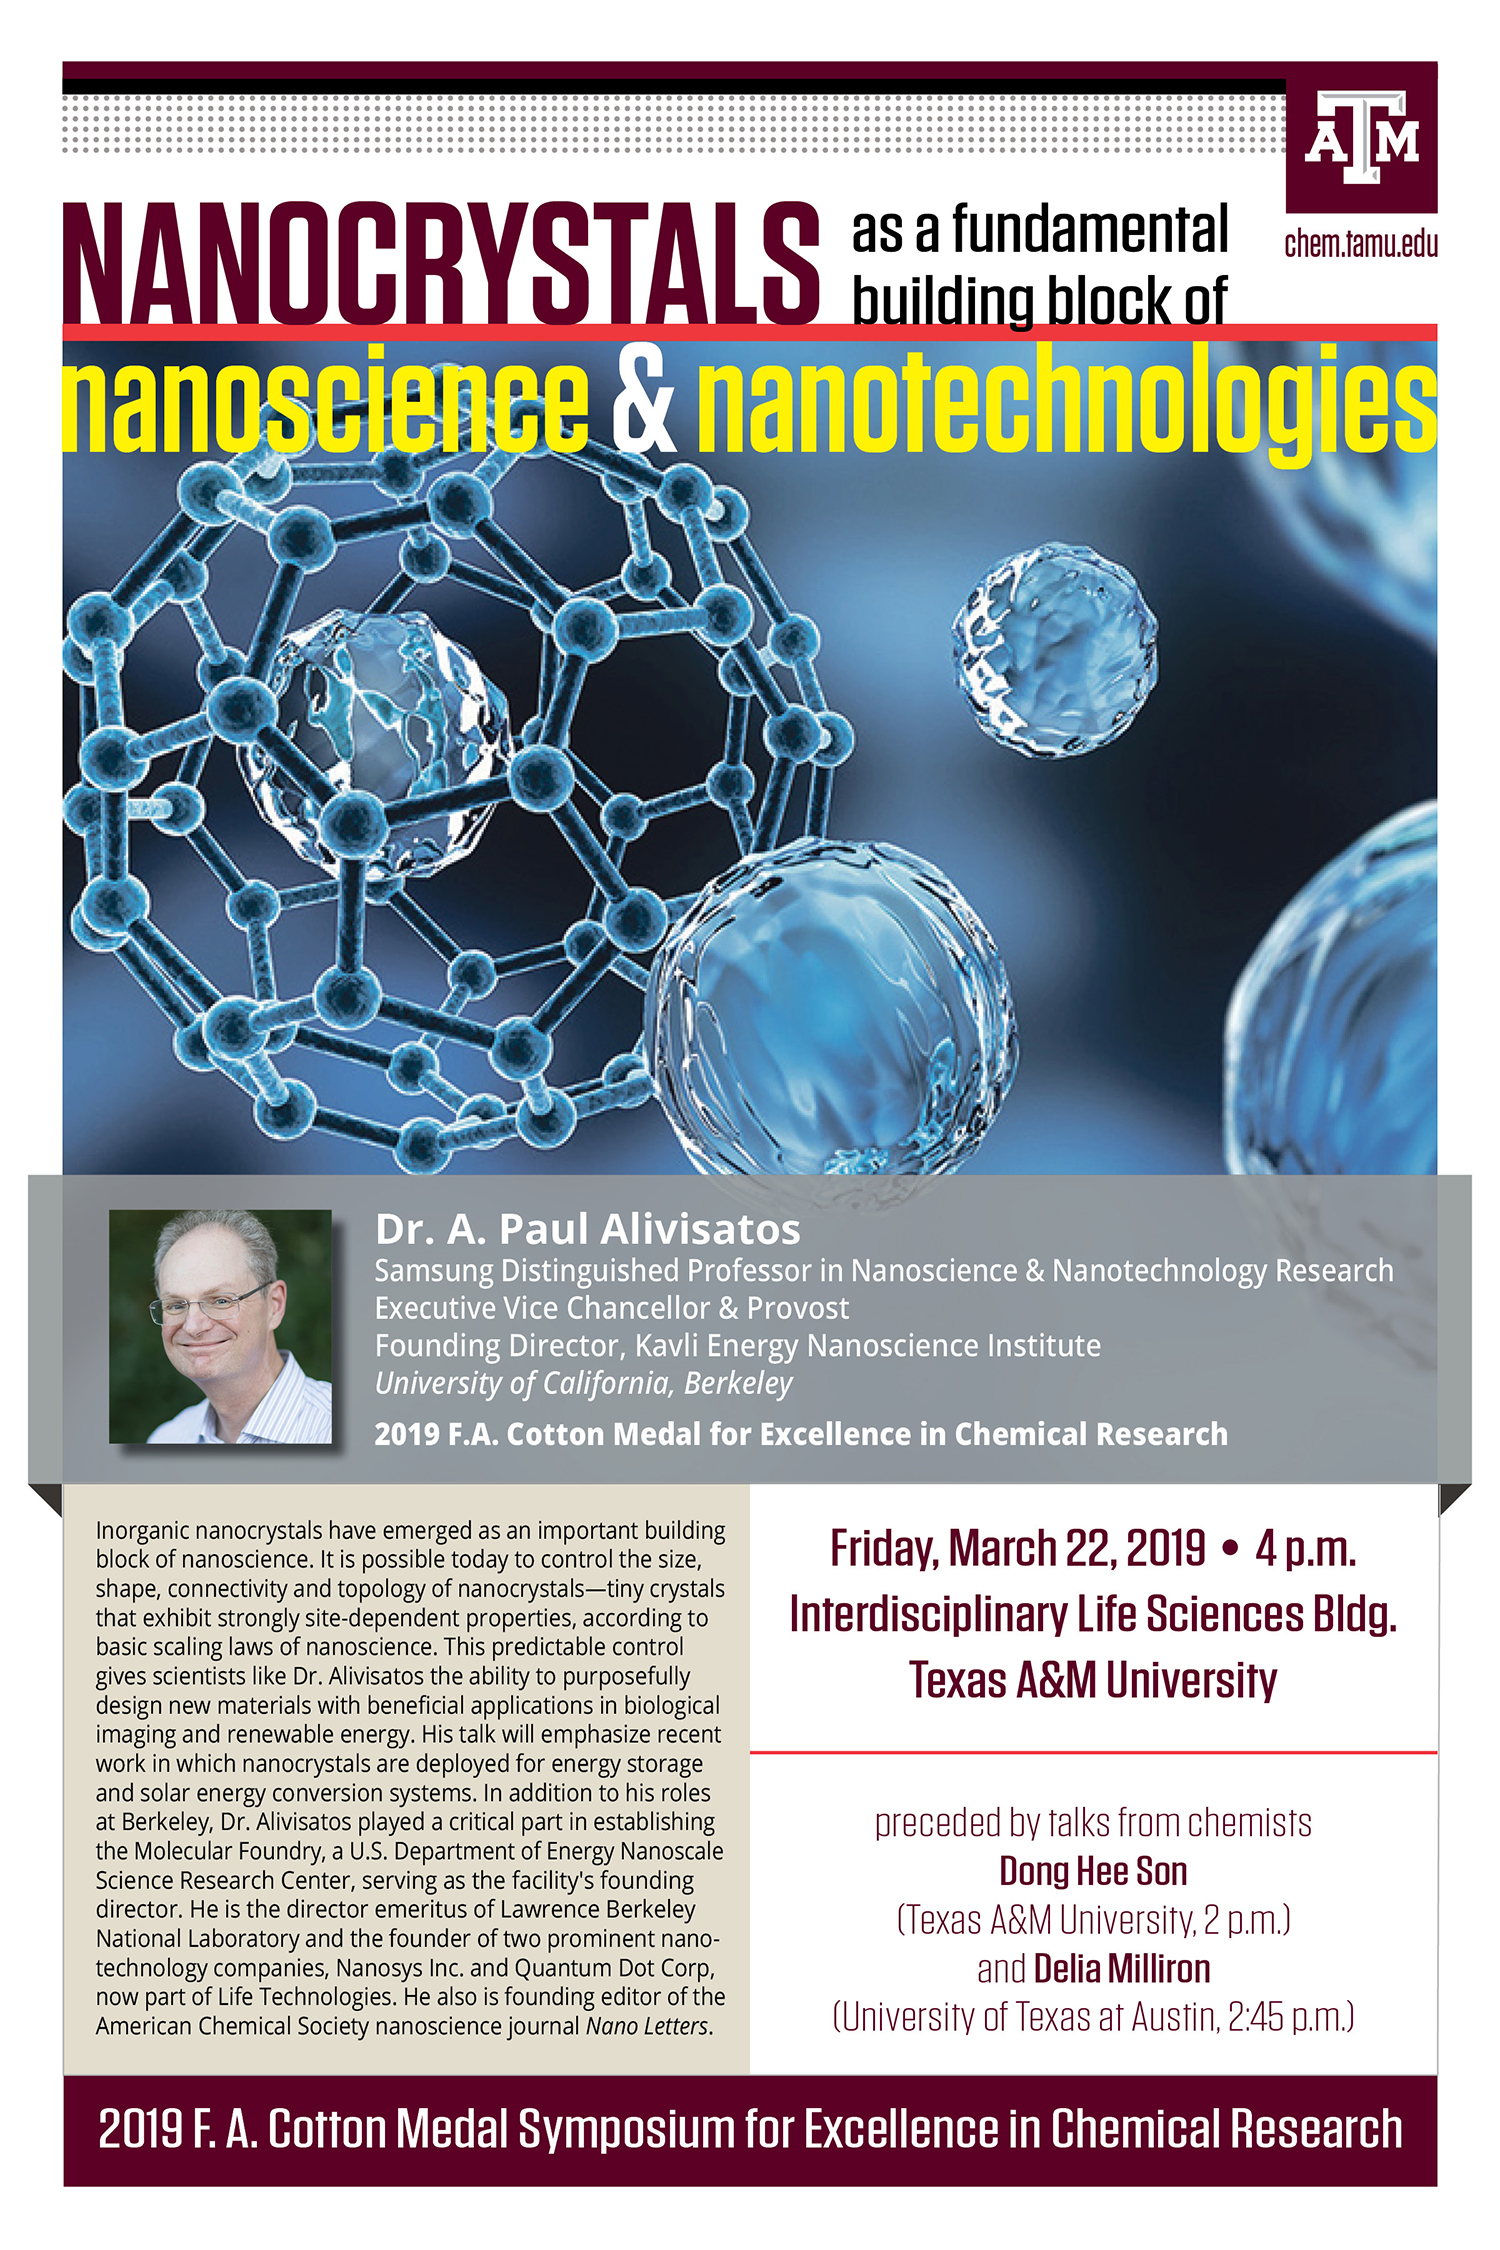 Poster featuring a headshot of Dr. Paul Alivisatos and molecules to promote his lecture